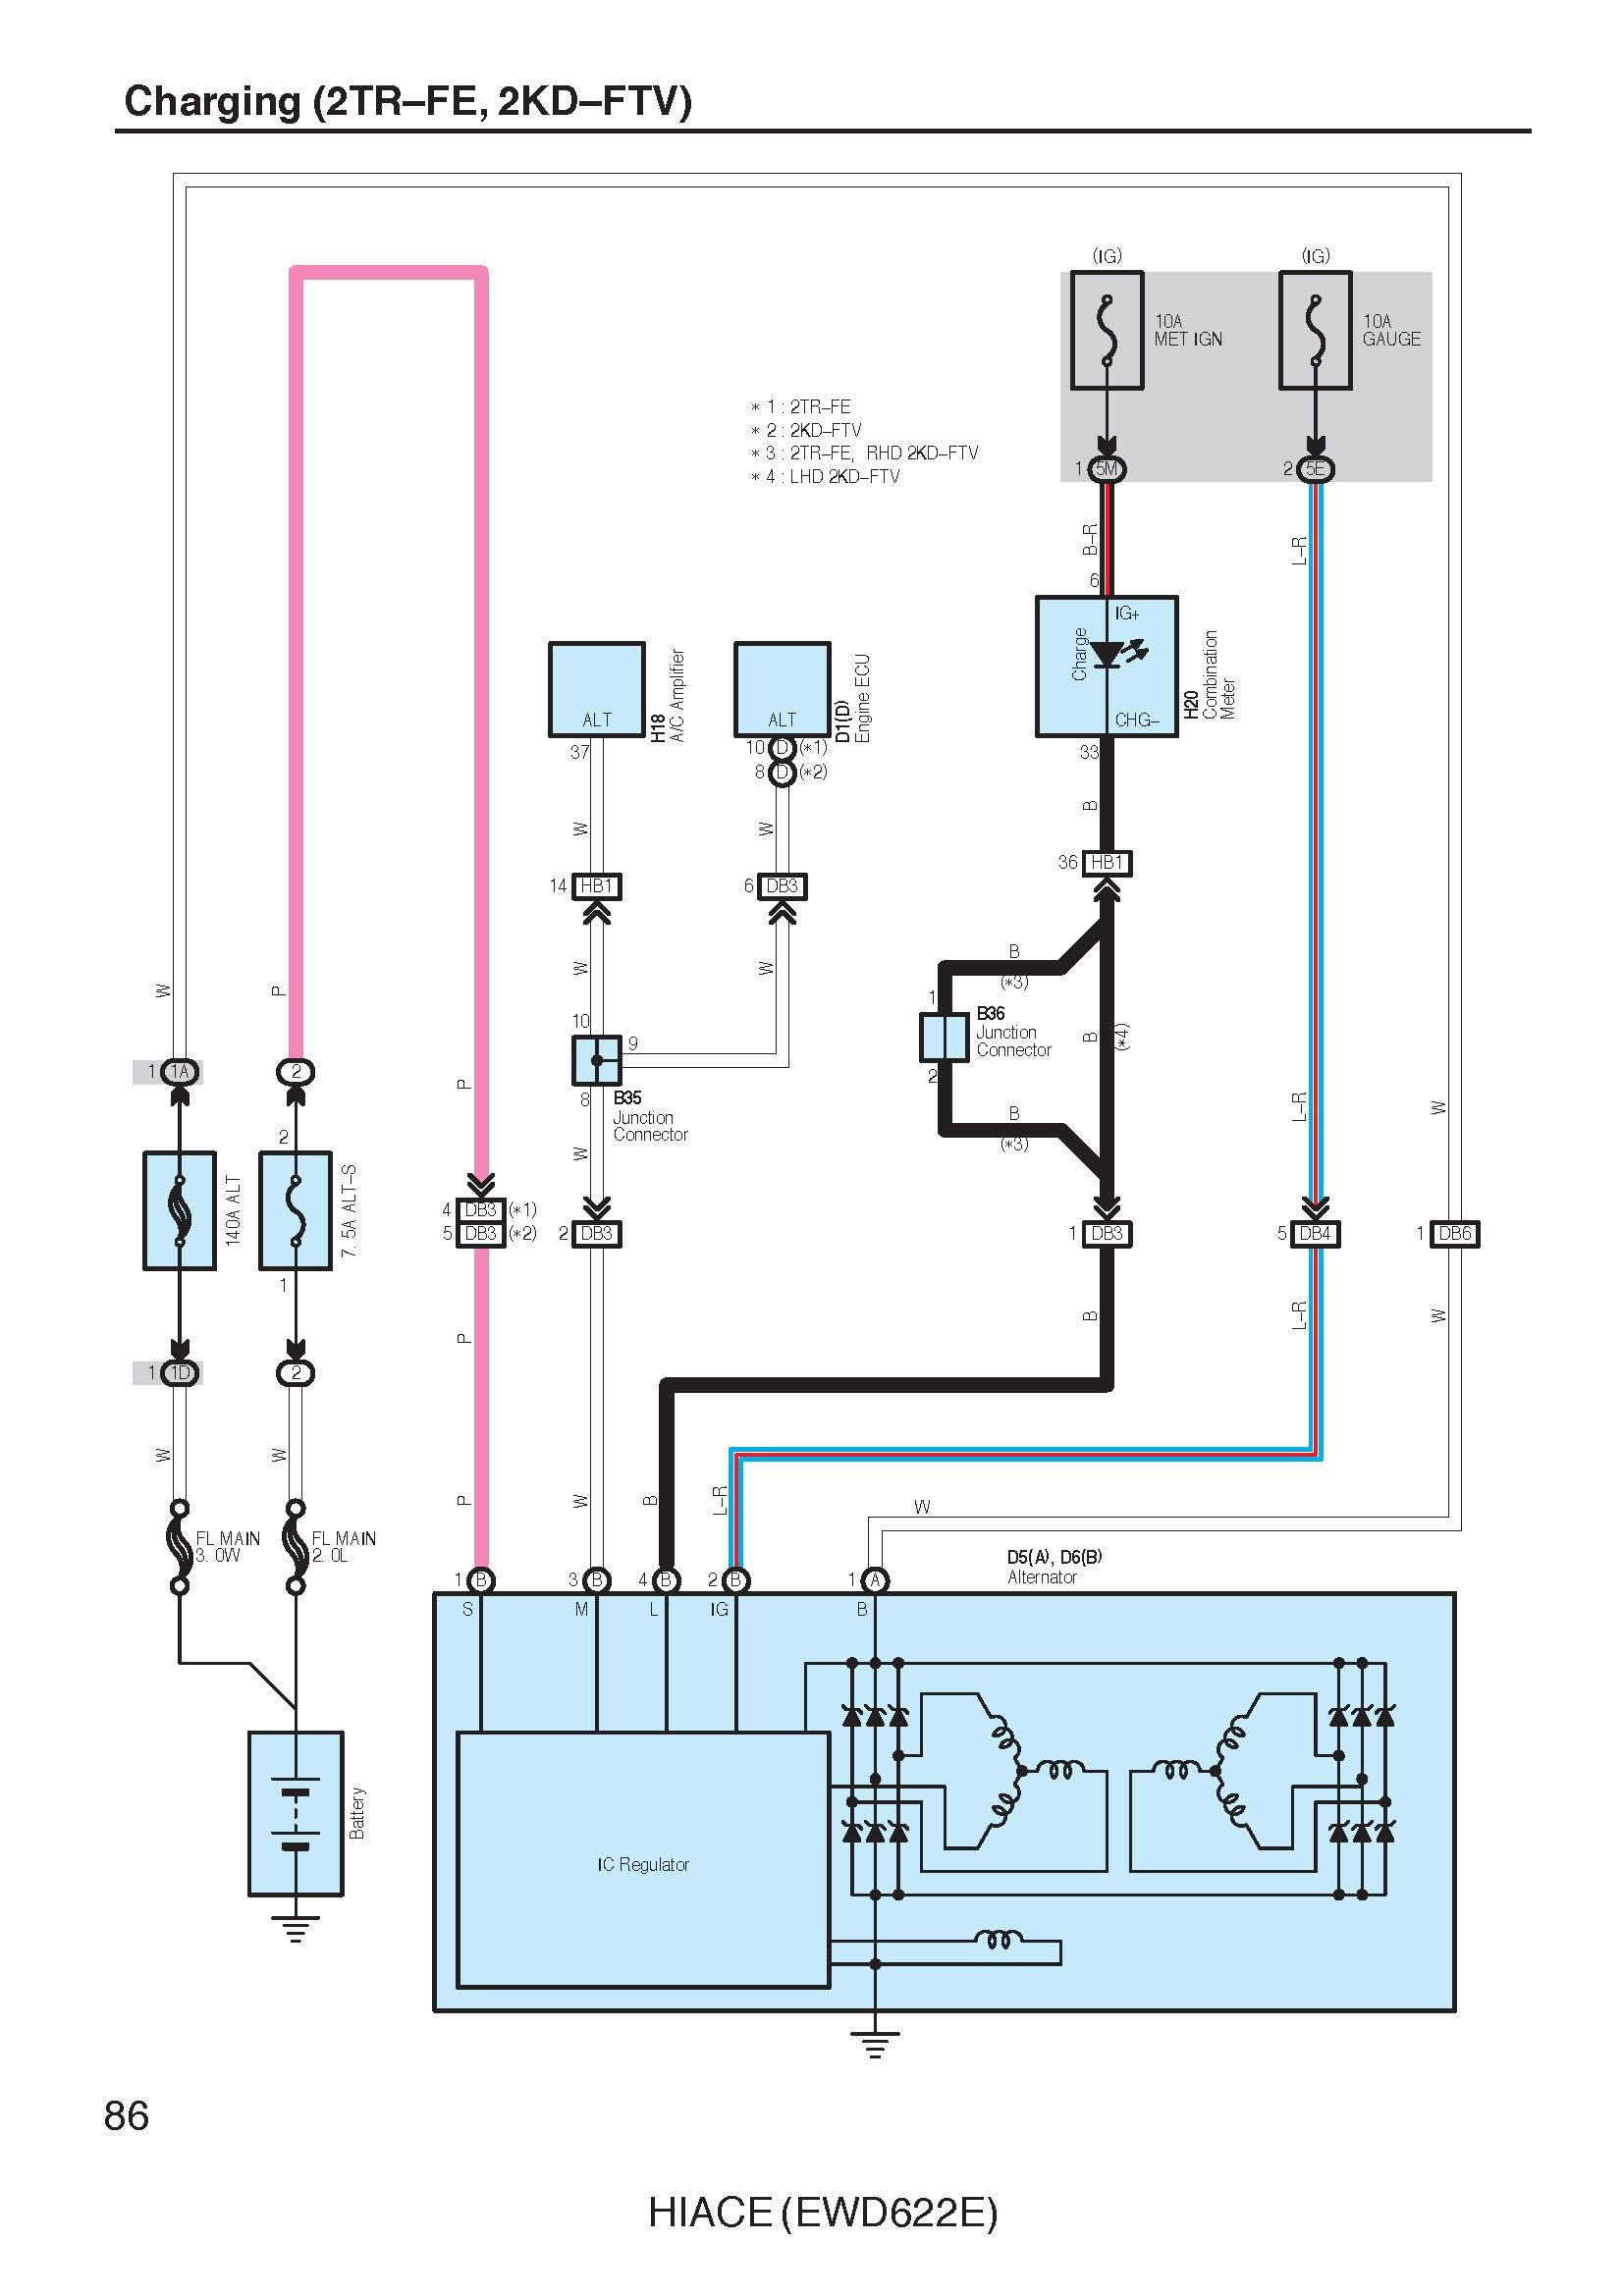 Toyota Electrical Wiring Diagram Data Tacoma Fuse Box Online Free Diagrams